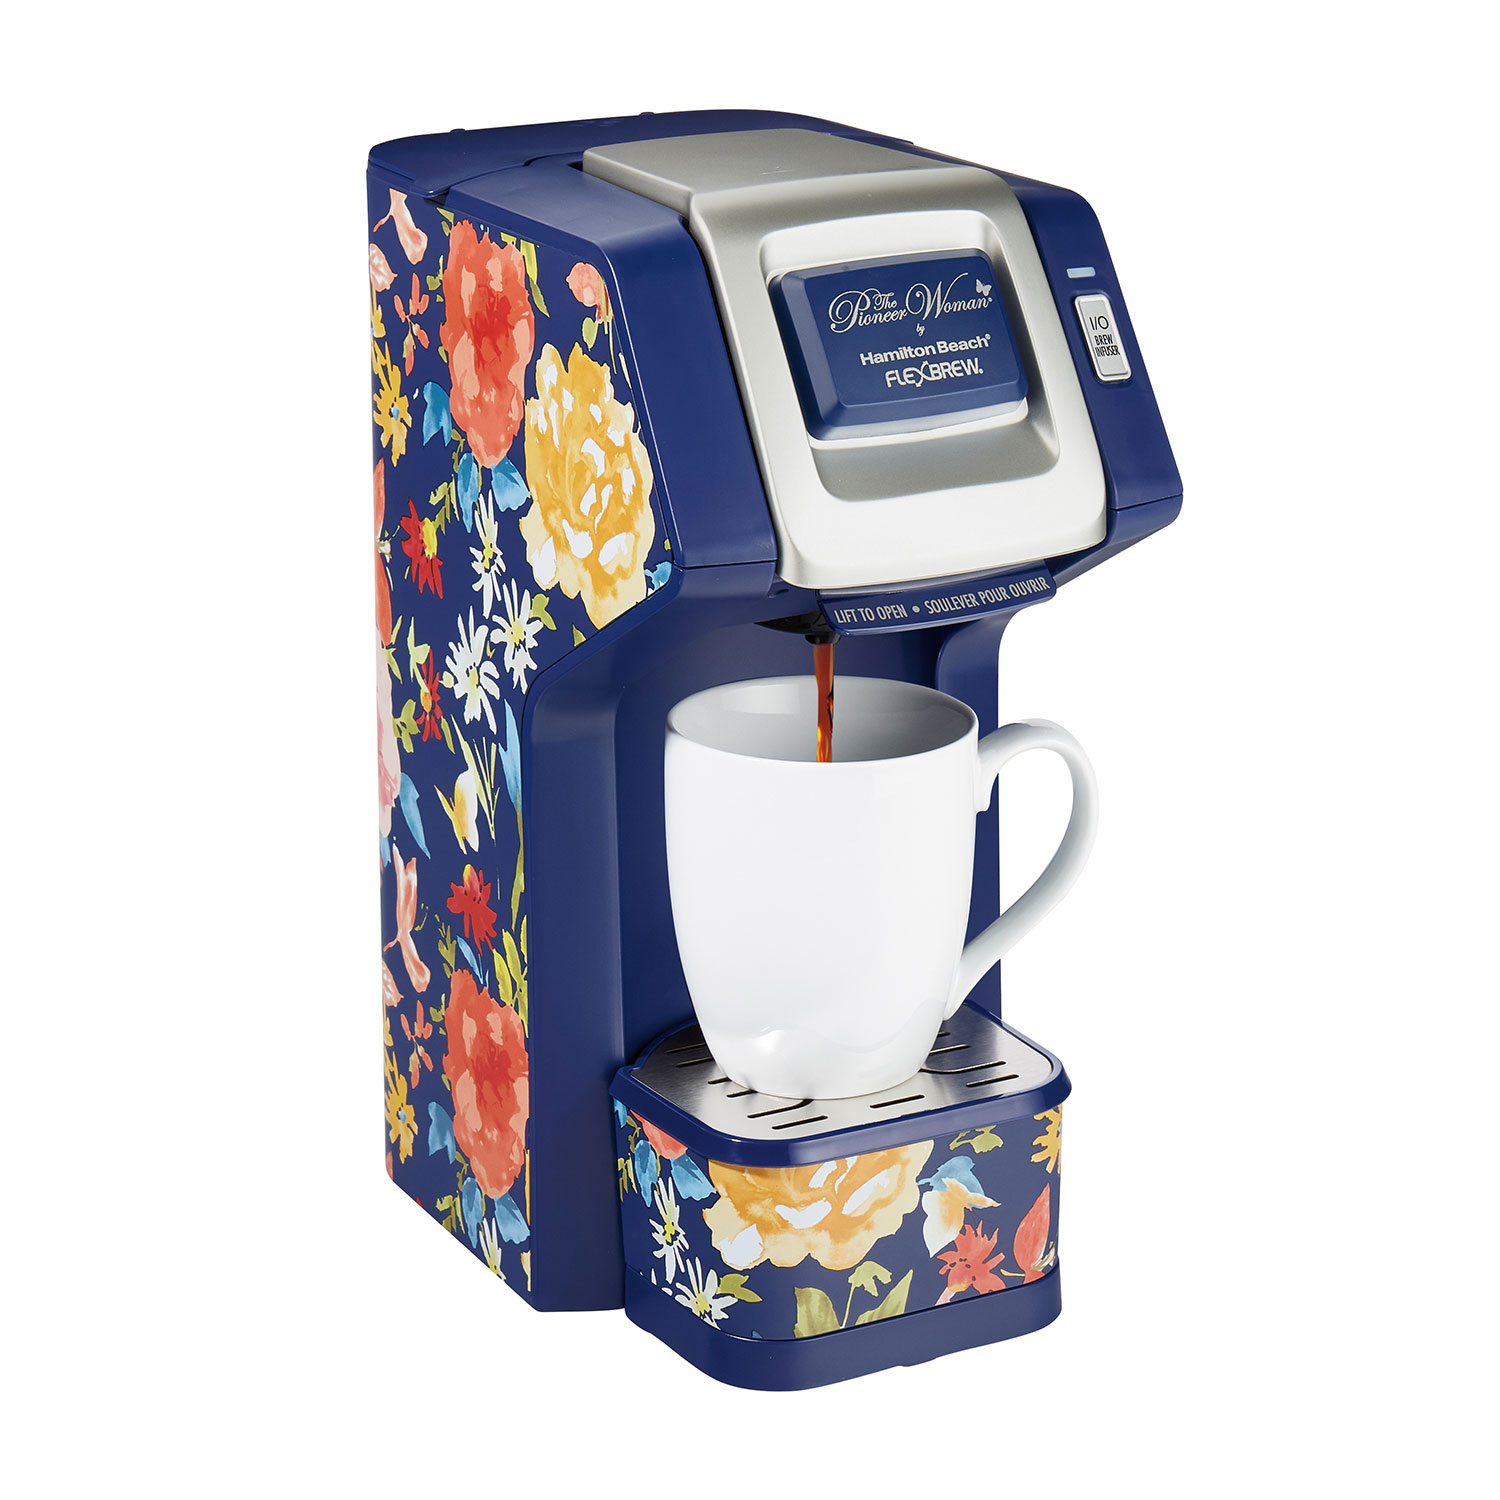 Pioneer Woman® Fiona Floral FlexBrew® Single-Serve Coffee Maker by Hamilton Beach® (49932)